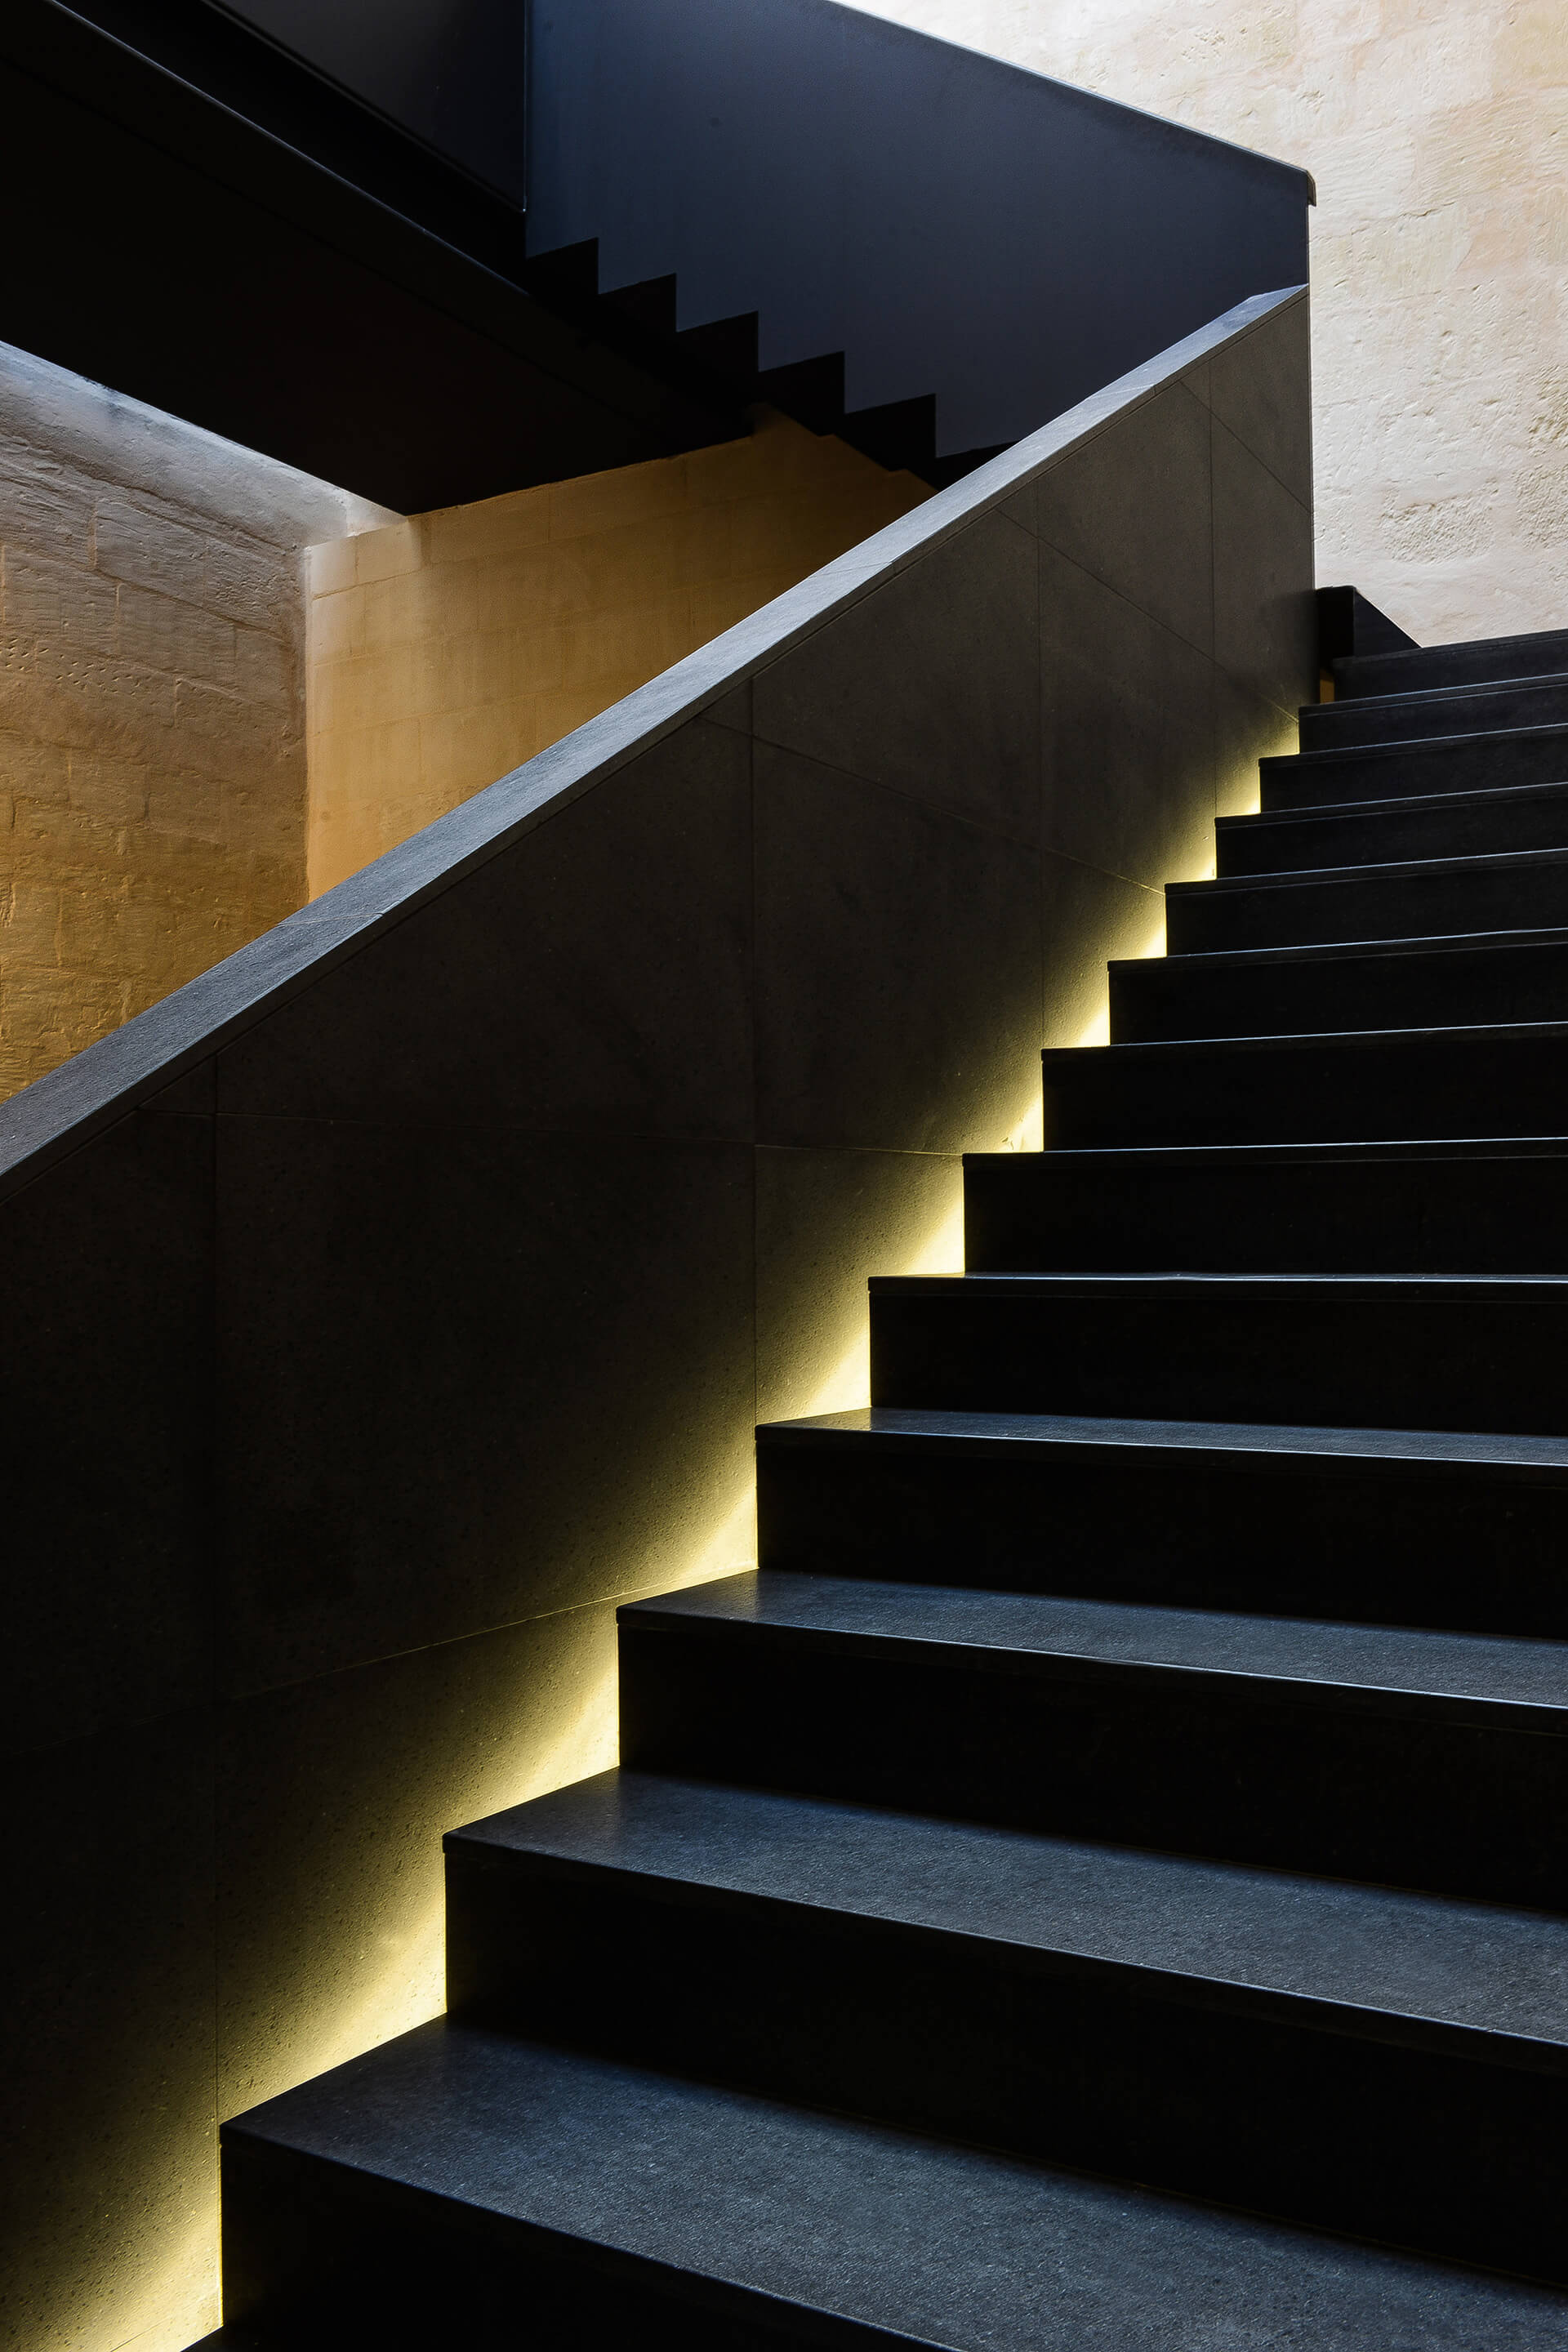 The staircase | DAAA Haus wins German Design Award 2020 for Cugó Gran Macina Grand Harbour | STIRworld